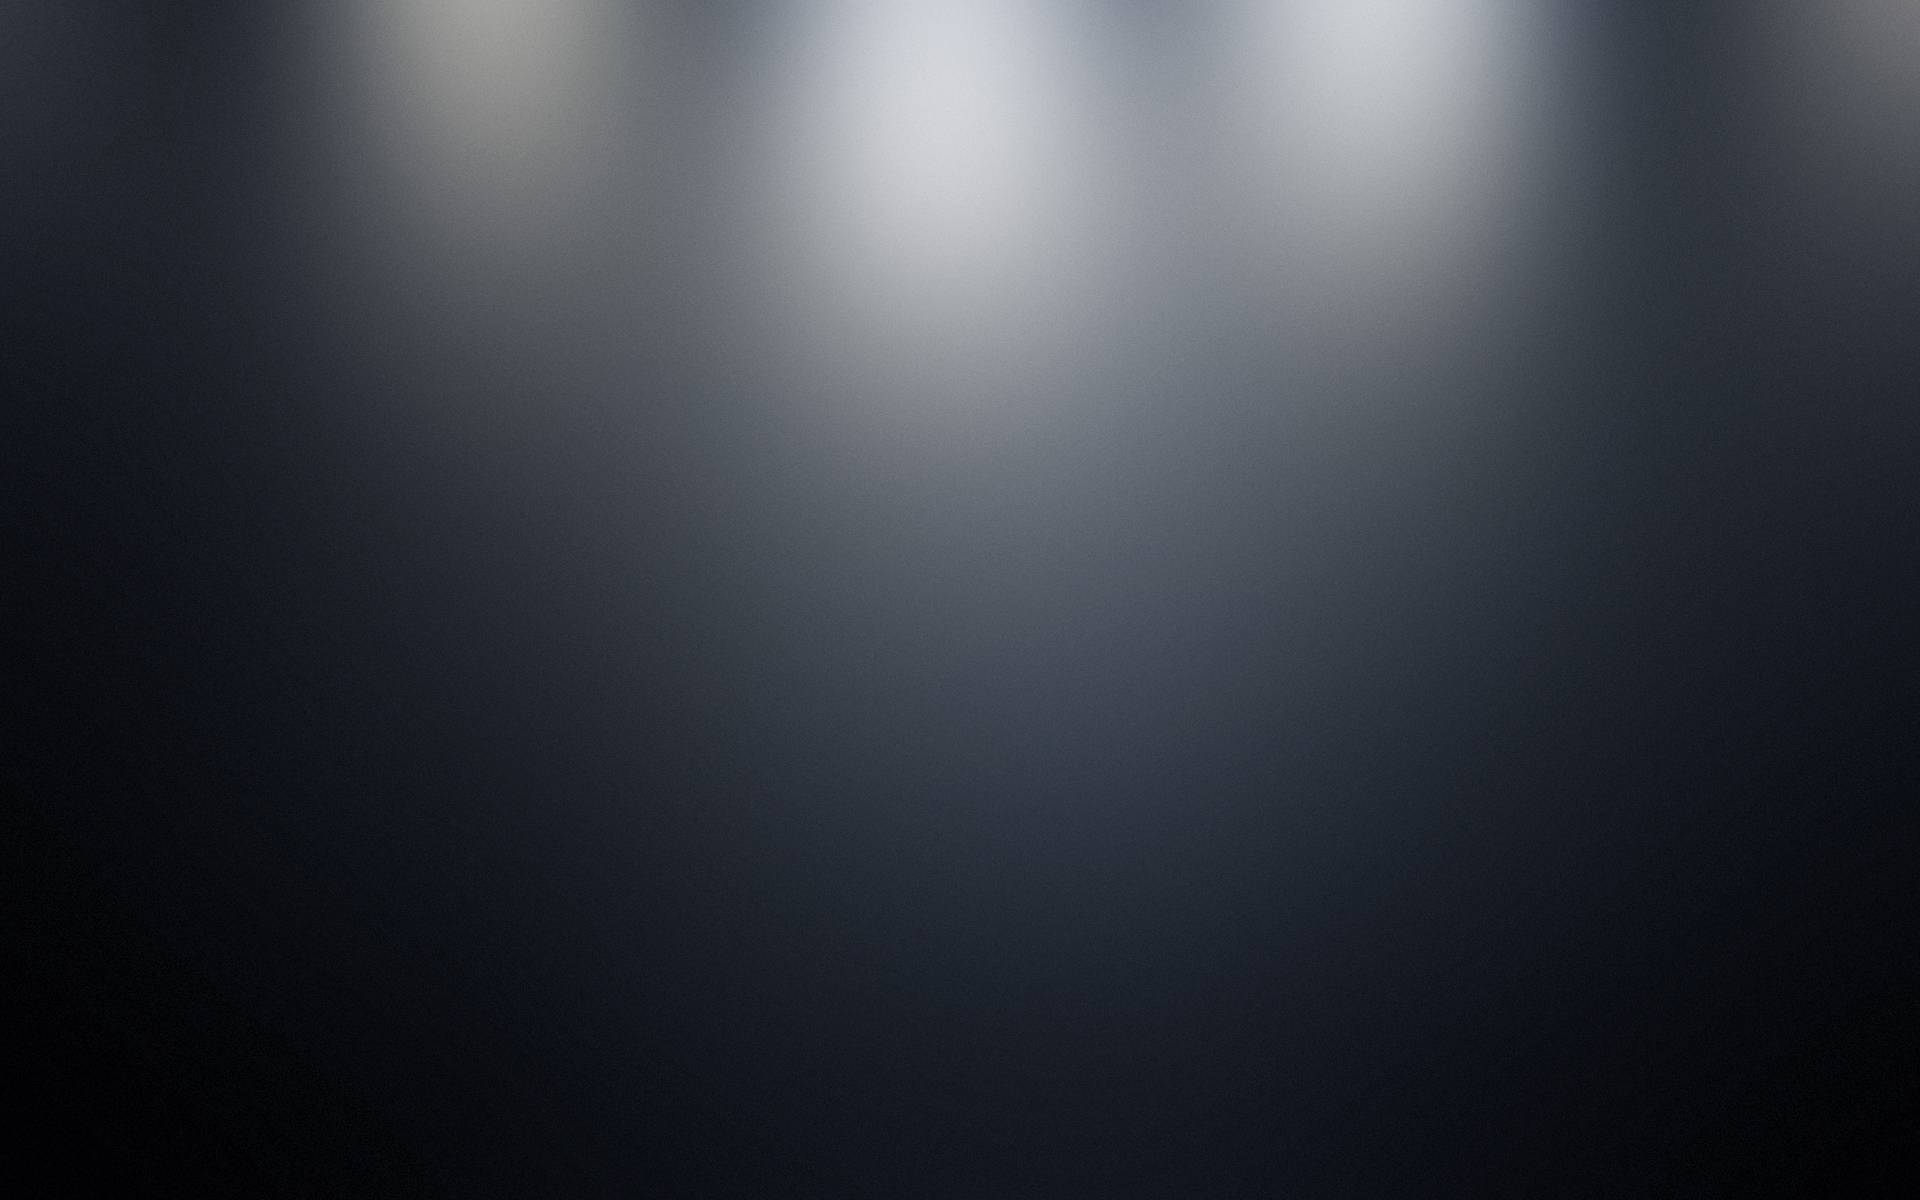 Dark Gradient Wallpaper